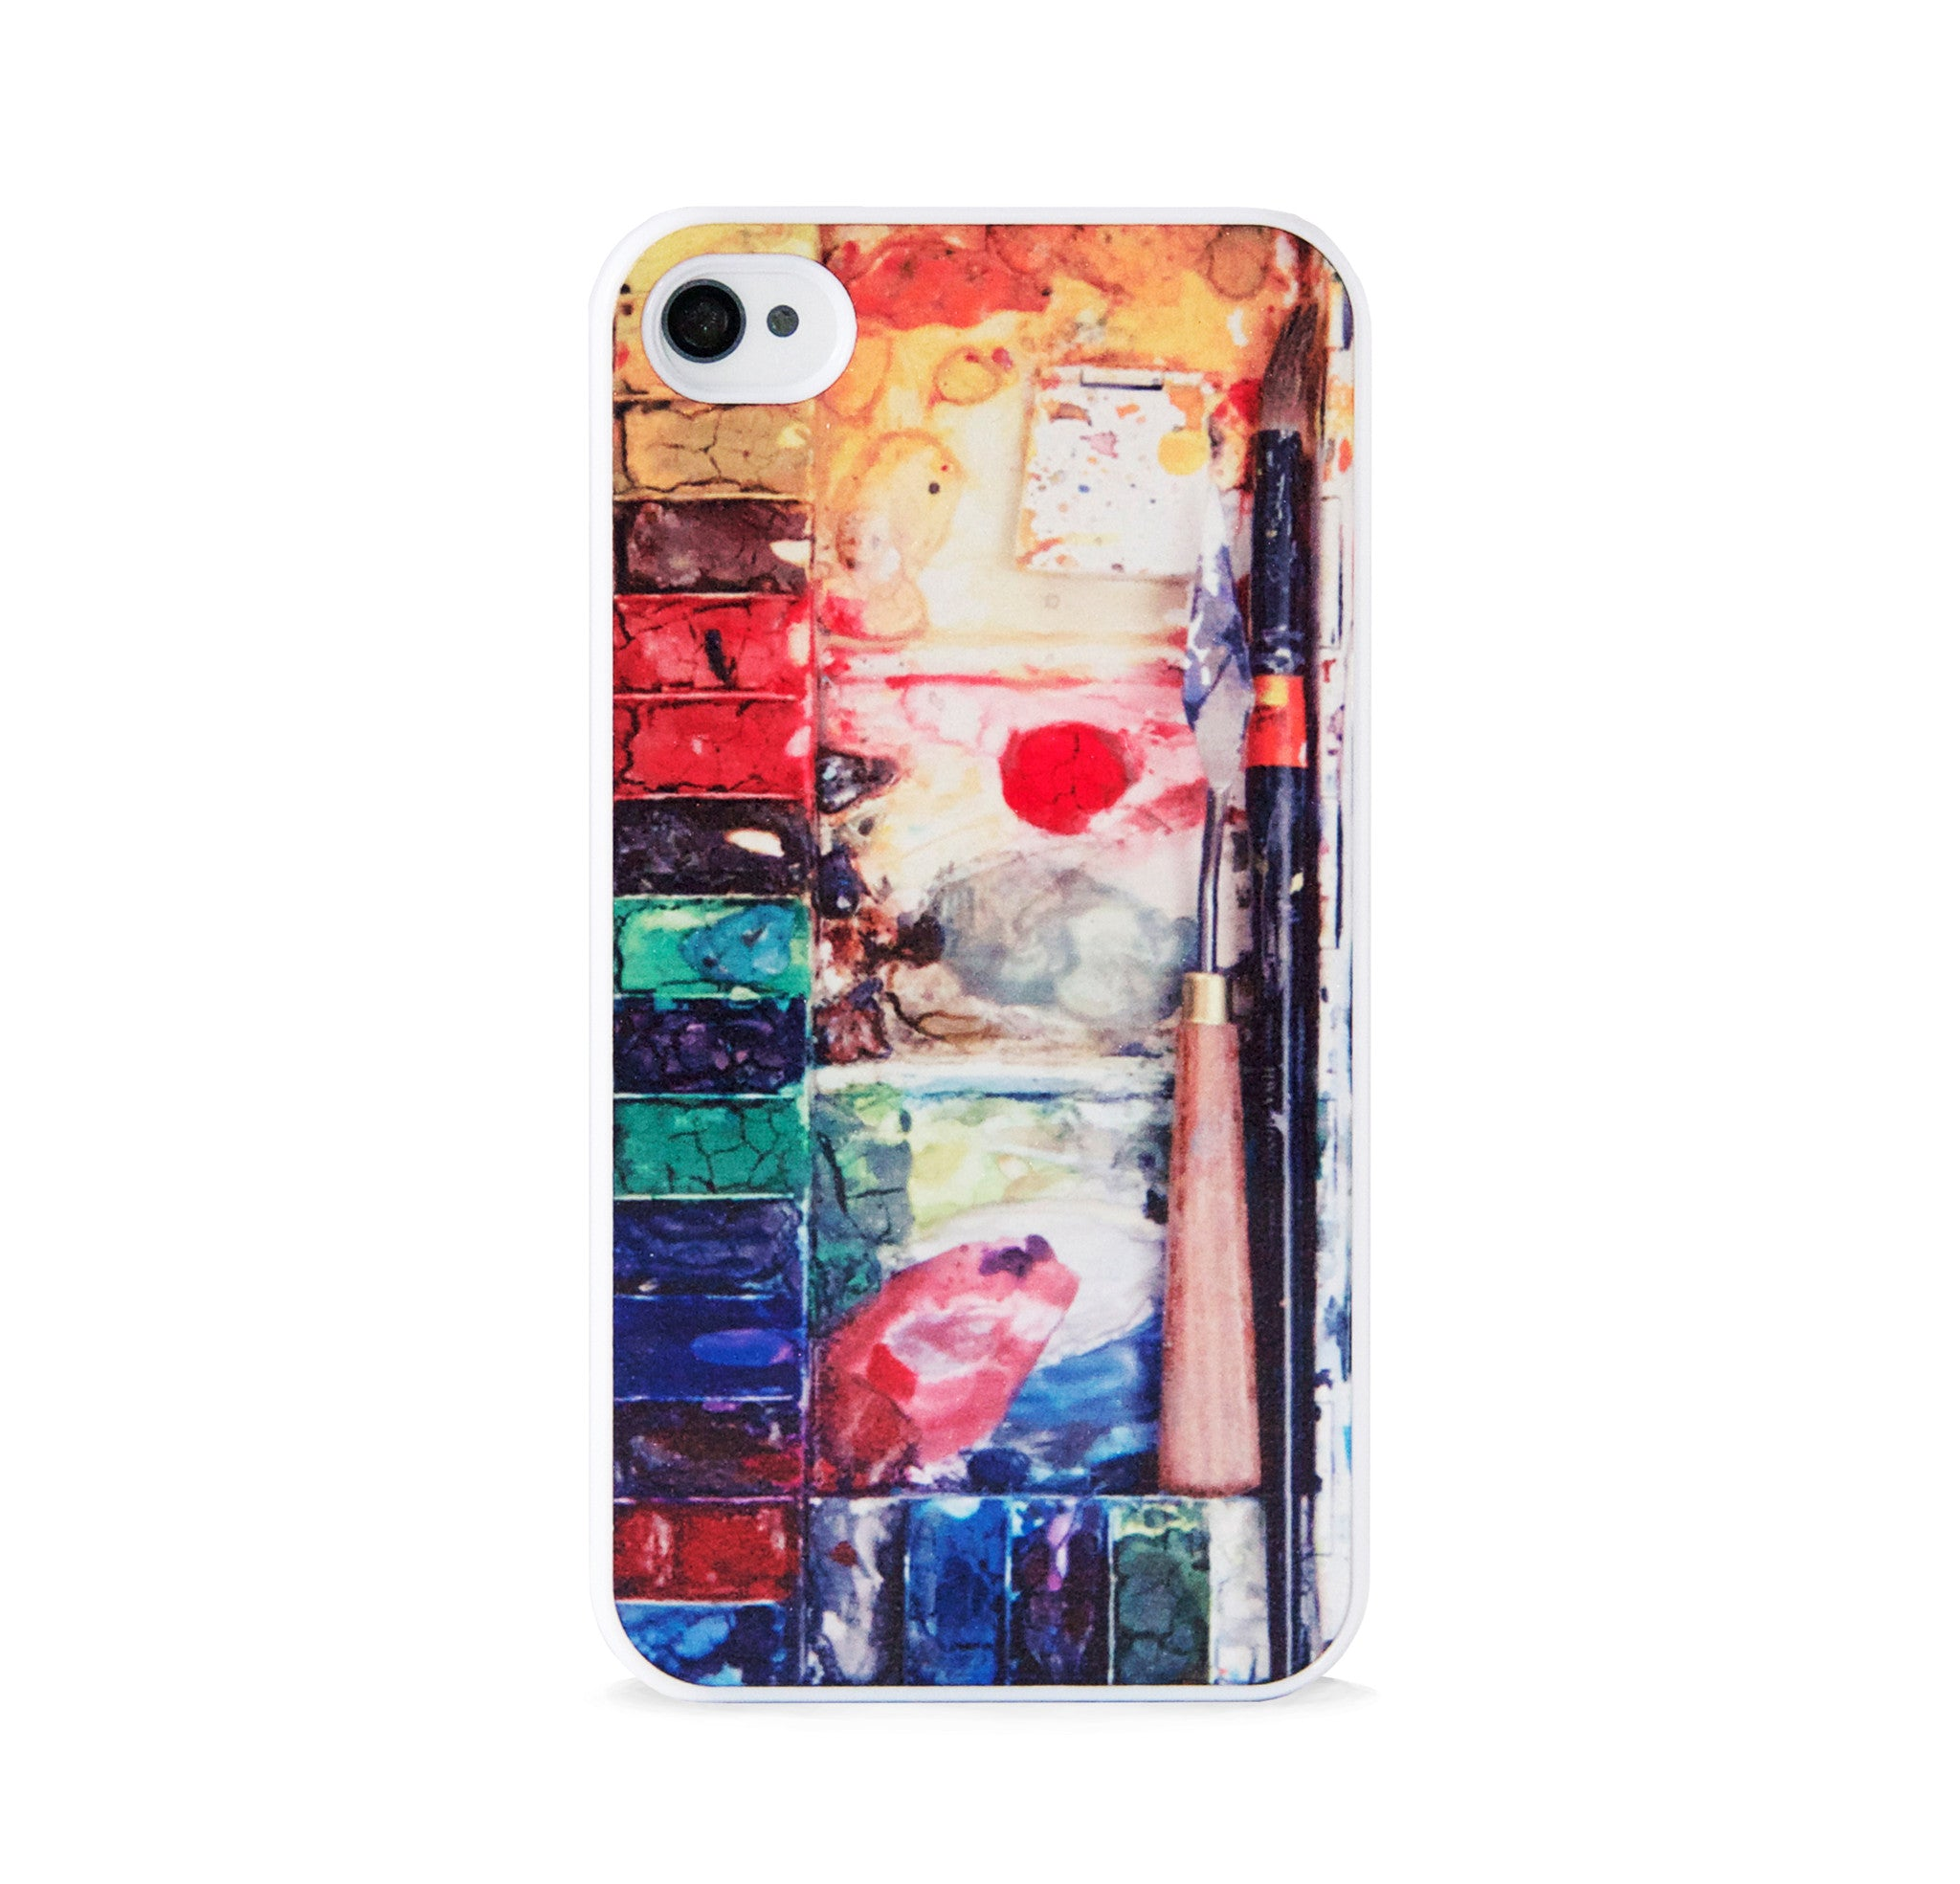 VINTAGE ARTISTS PALETTE FOR IPHONE 4/4S